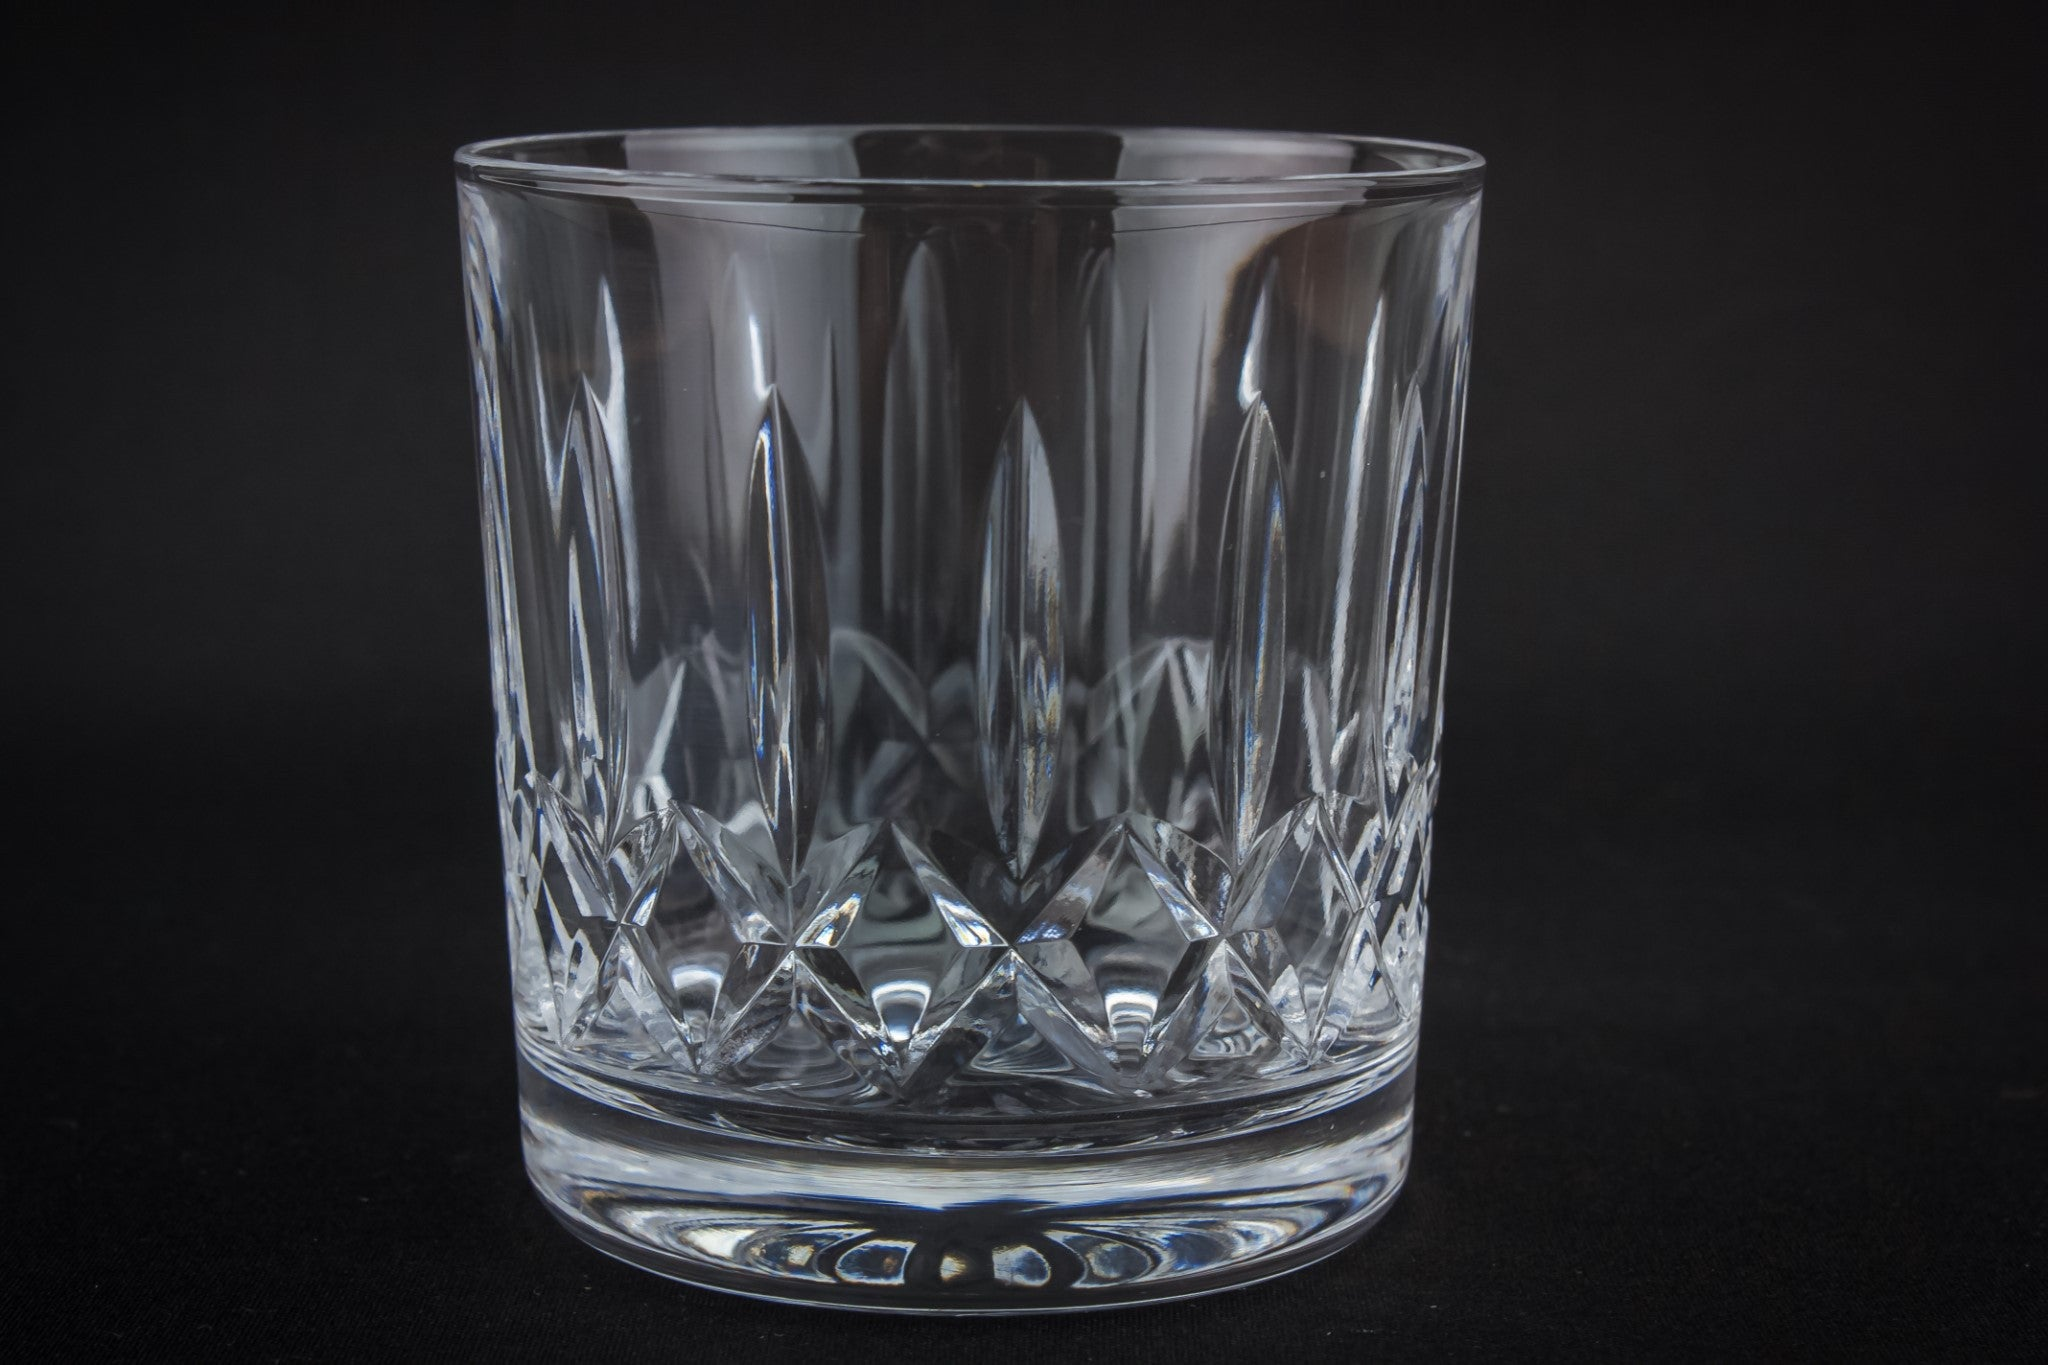 3 tumbler whisky glasses